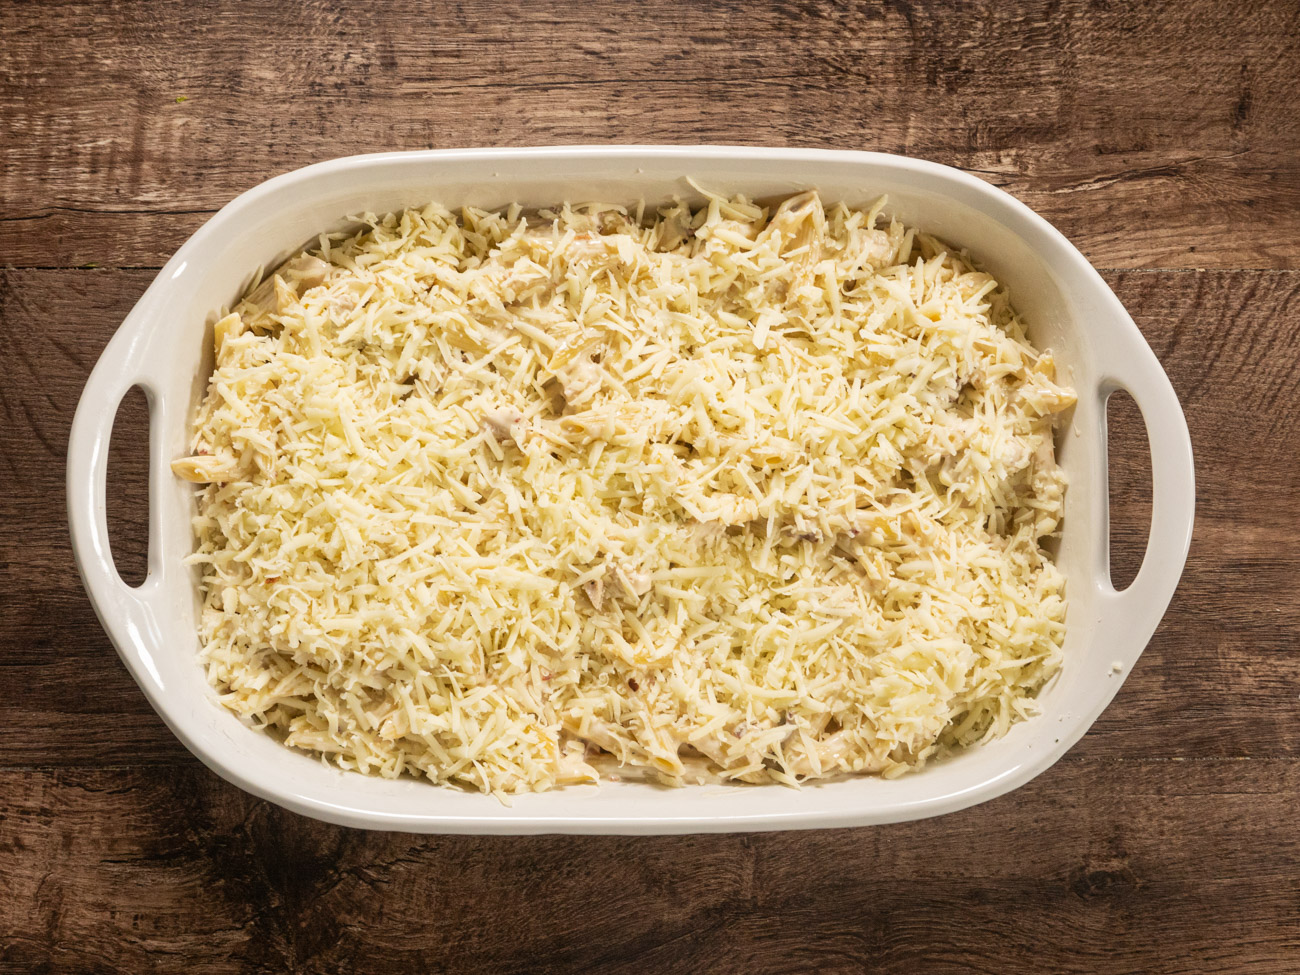 Pour into baking dish and level with a spoon. Top casserole with mozzarella cheese.